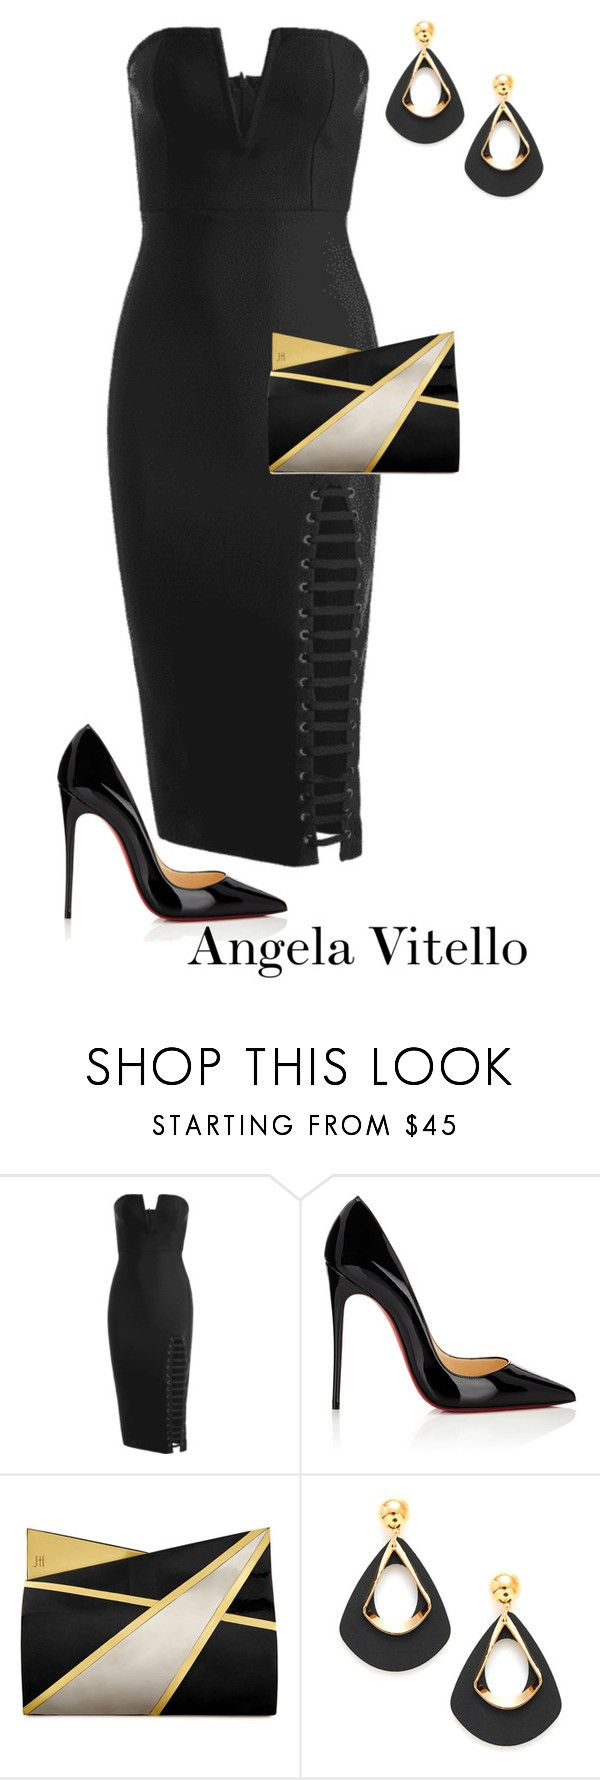 """Untitled #1113"" by angela-vitello on Polyvore featuring Christian Louboutin and Jill Haber"